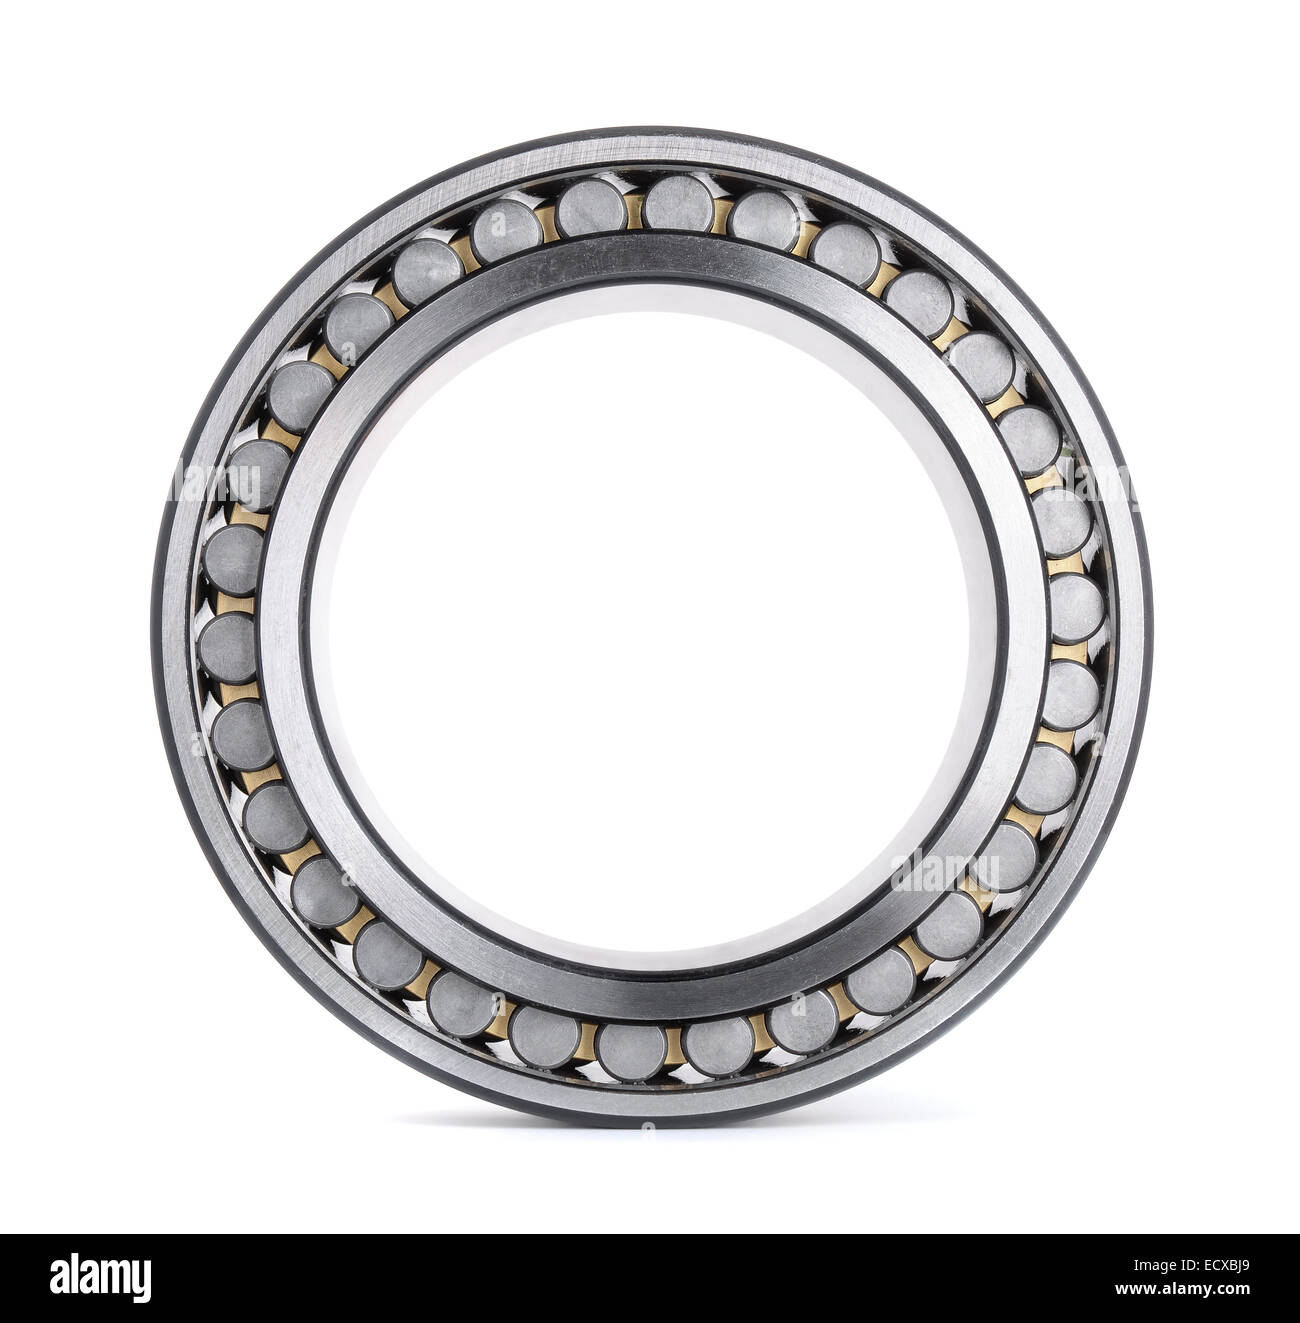 Cylindrical roller bearing isolated on white - Stock Image